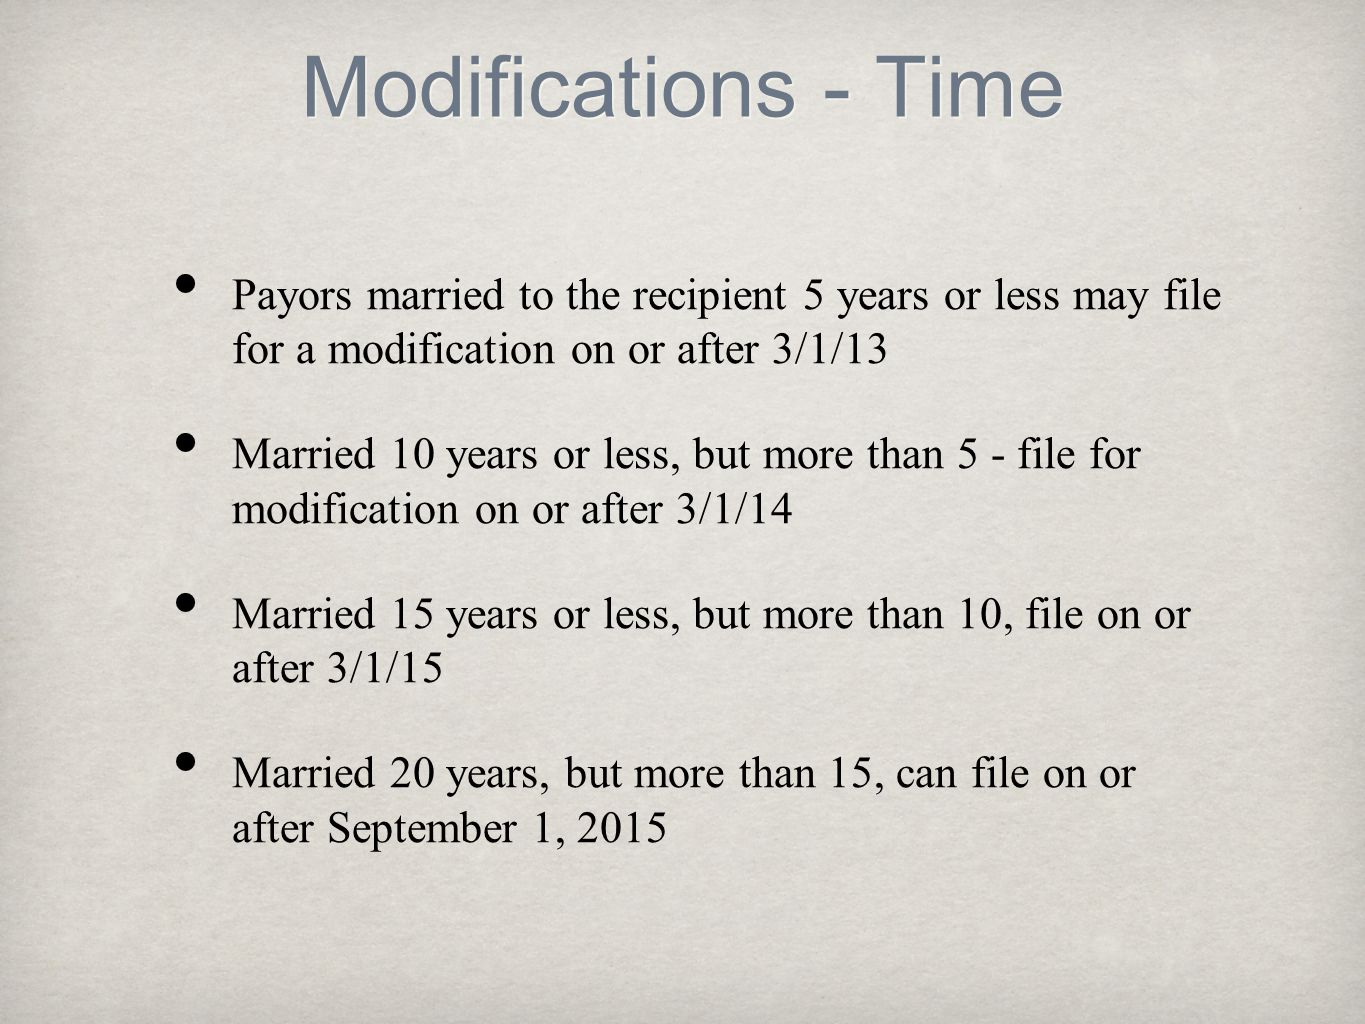 Modifications - Time Payors married to the recipient 5 years or less may file for a modification on or after 3/1/13.